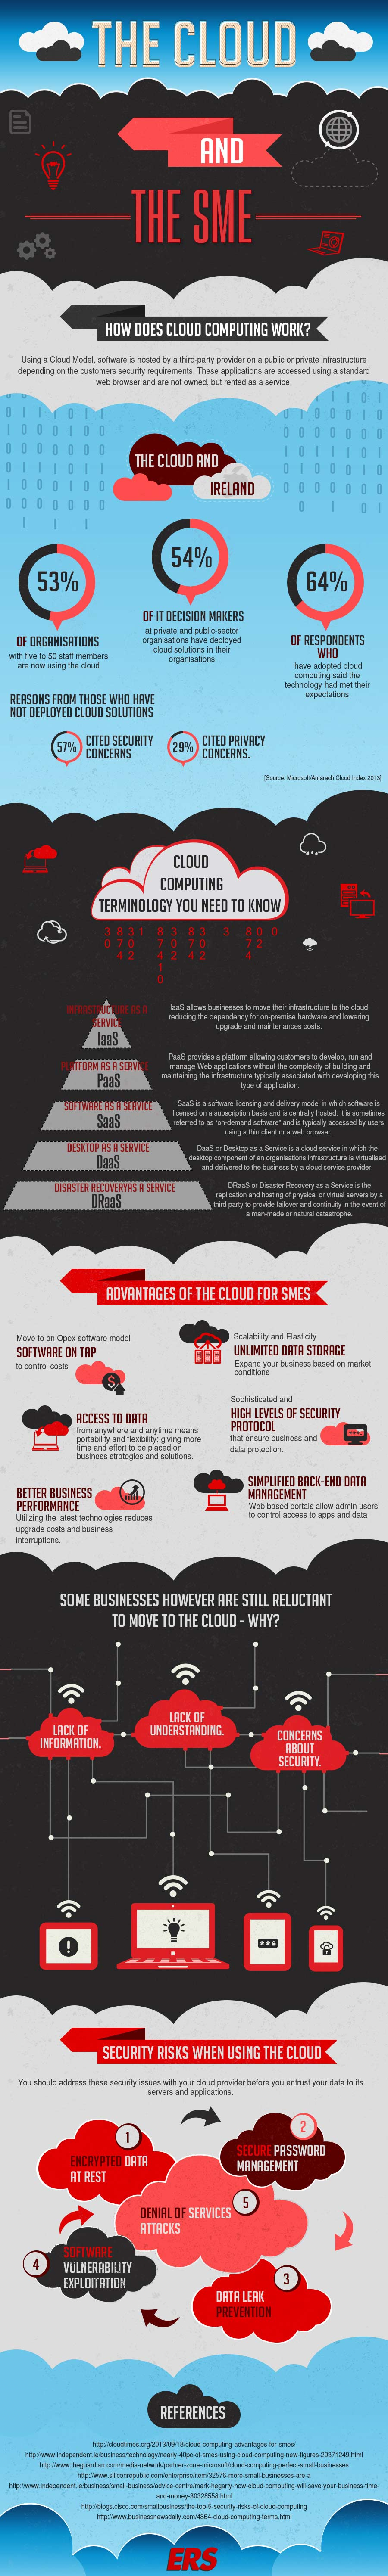 The-Cloud-and-the-SME